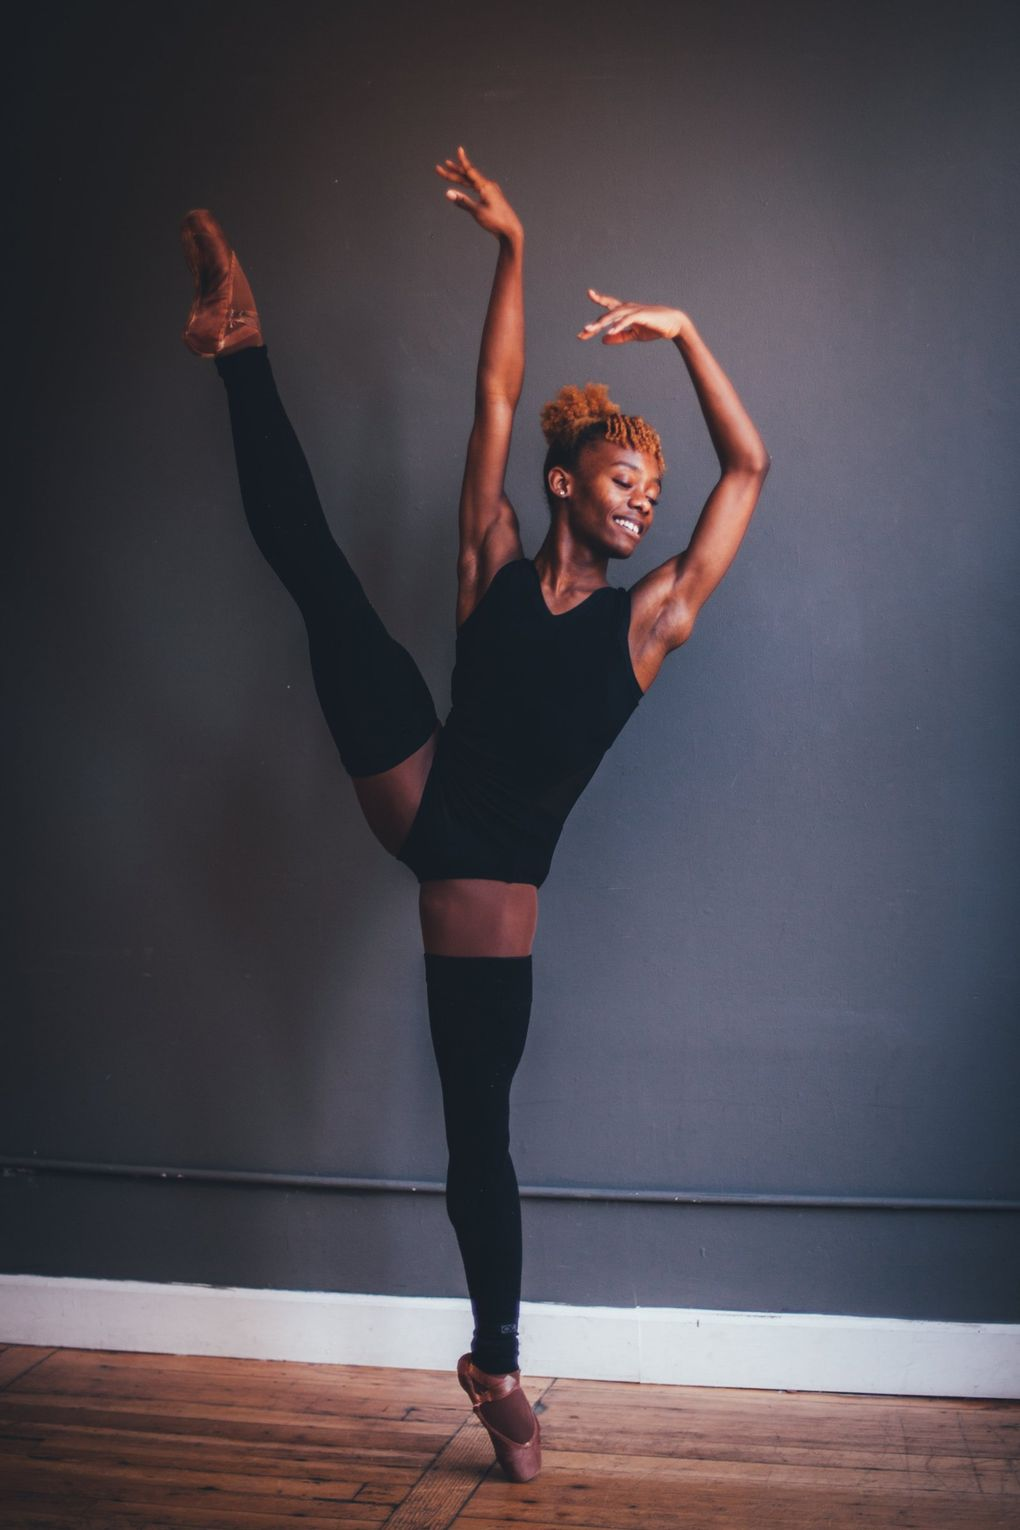 """Ashton Edwards is the first male professional division student at Pacific Northwest Ballet to take pointe technique classes. """"It was just like magic,"""" he says of his first time dancing on pointe. """"I felt like I could dance forever."""" (En Avant Photography)"""